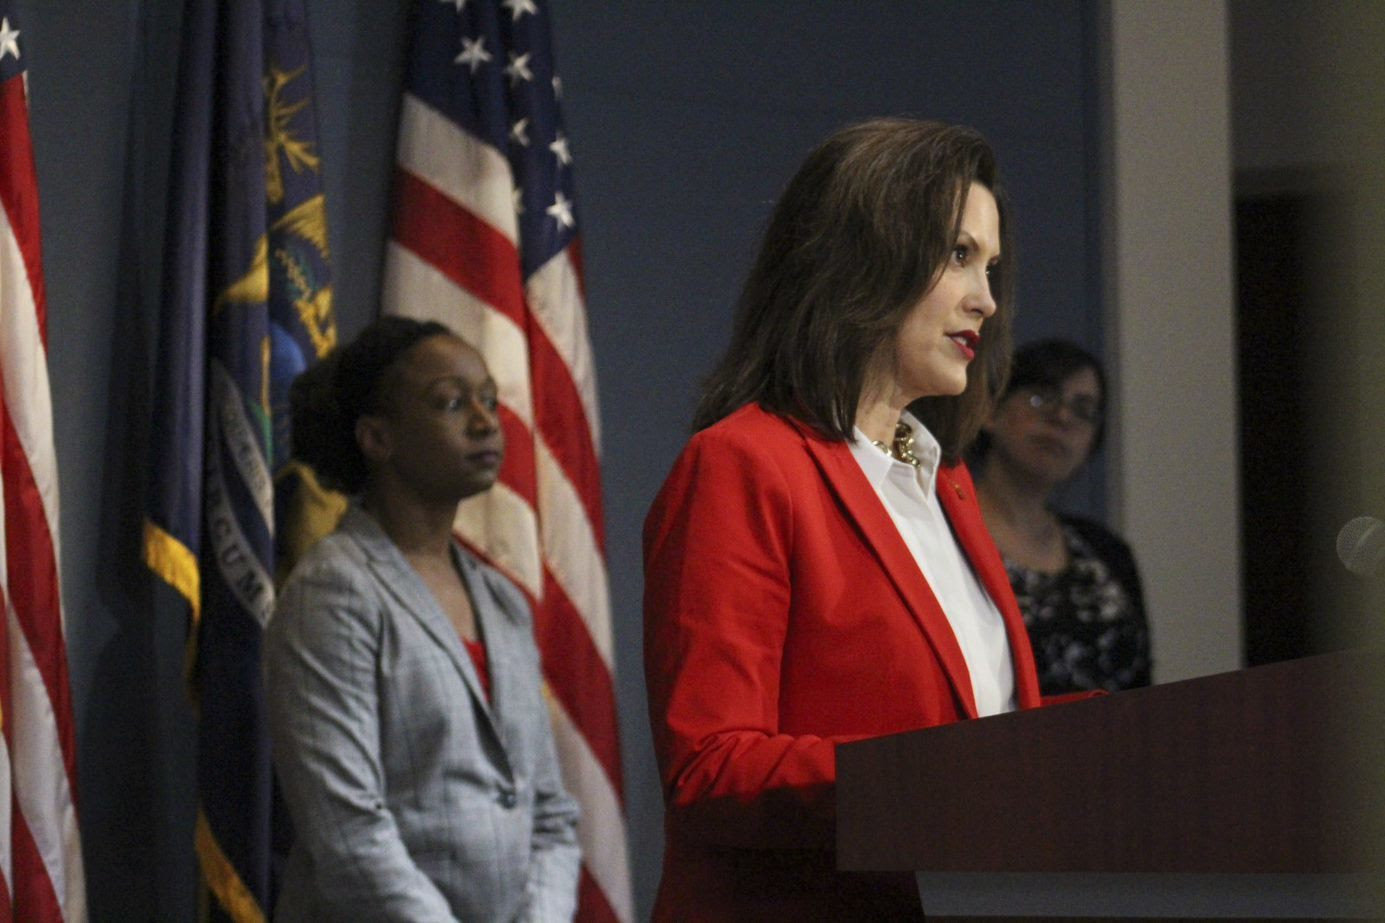 Republicans Target Whitmer S Authority Ahead Of Lockdown Extension City Pulse